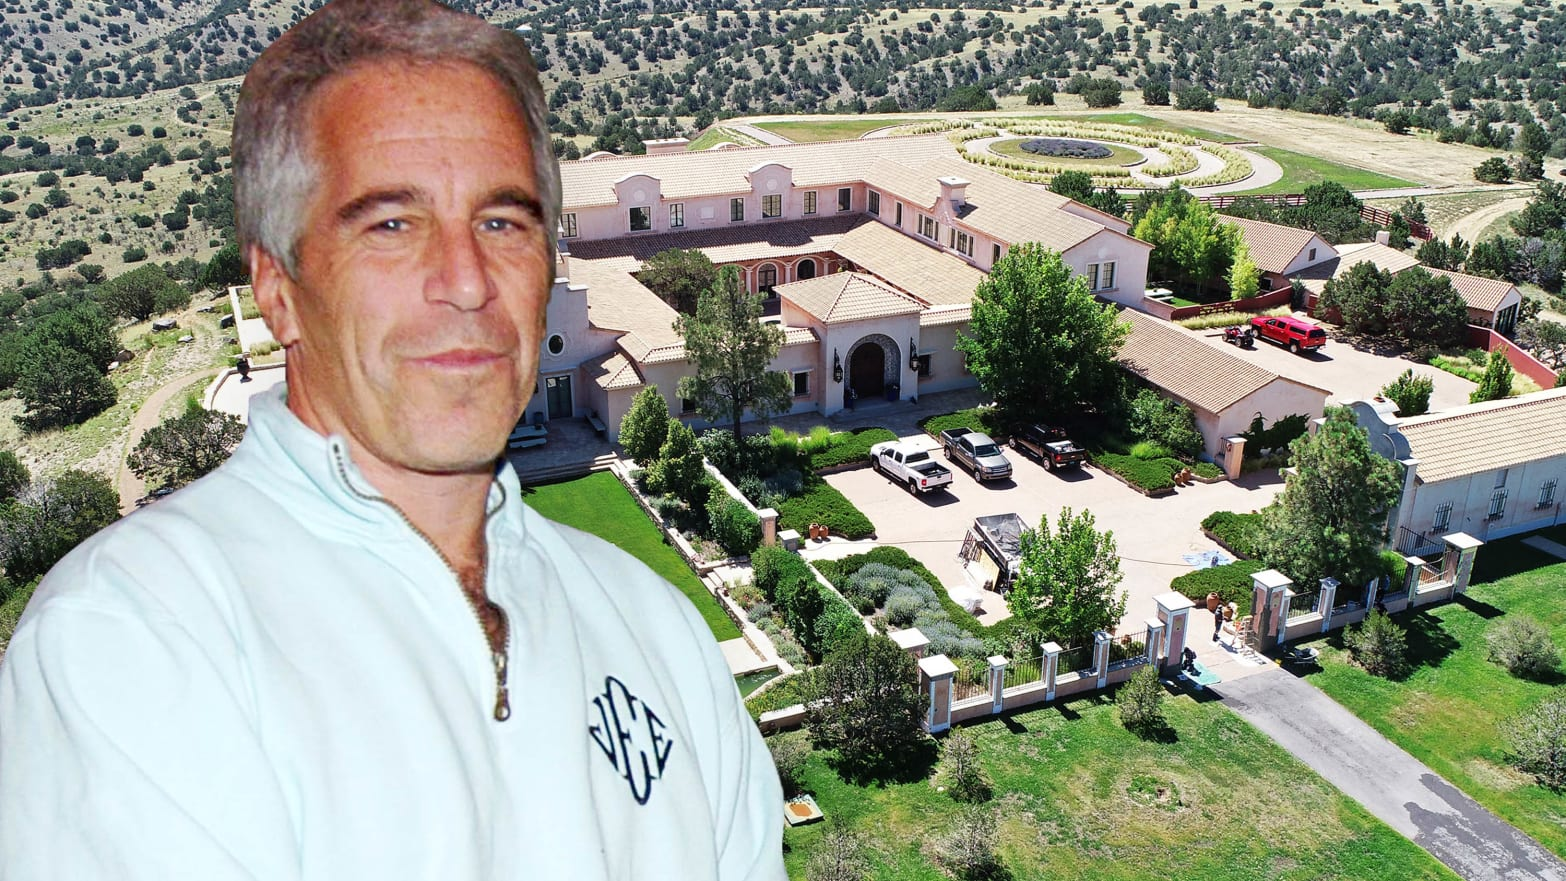 Jeffrey Epstein Seen With Young Girls as He Shopped for 'Baby Ranch